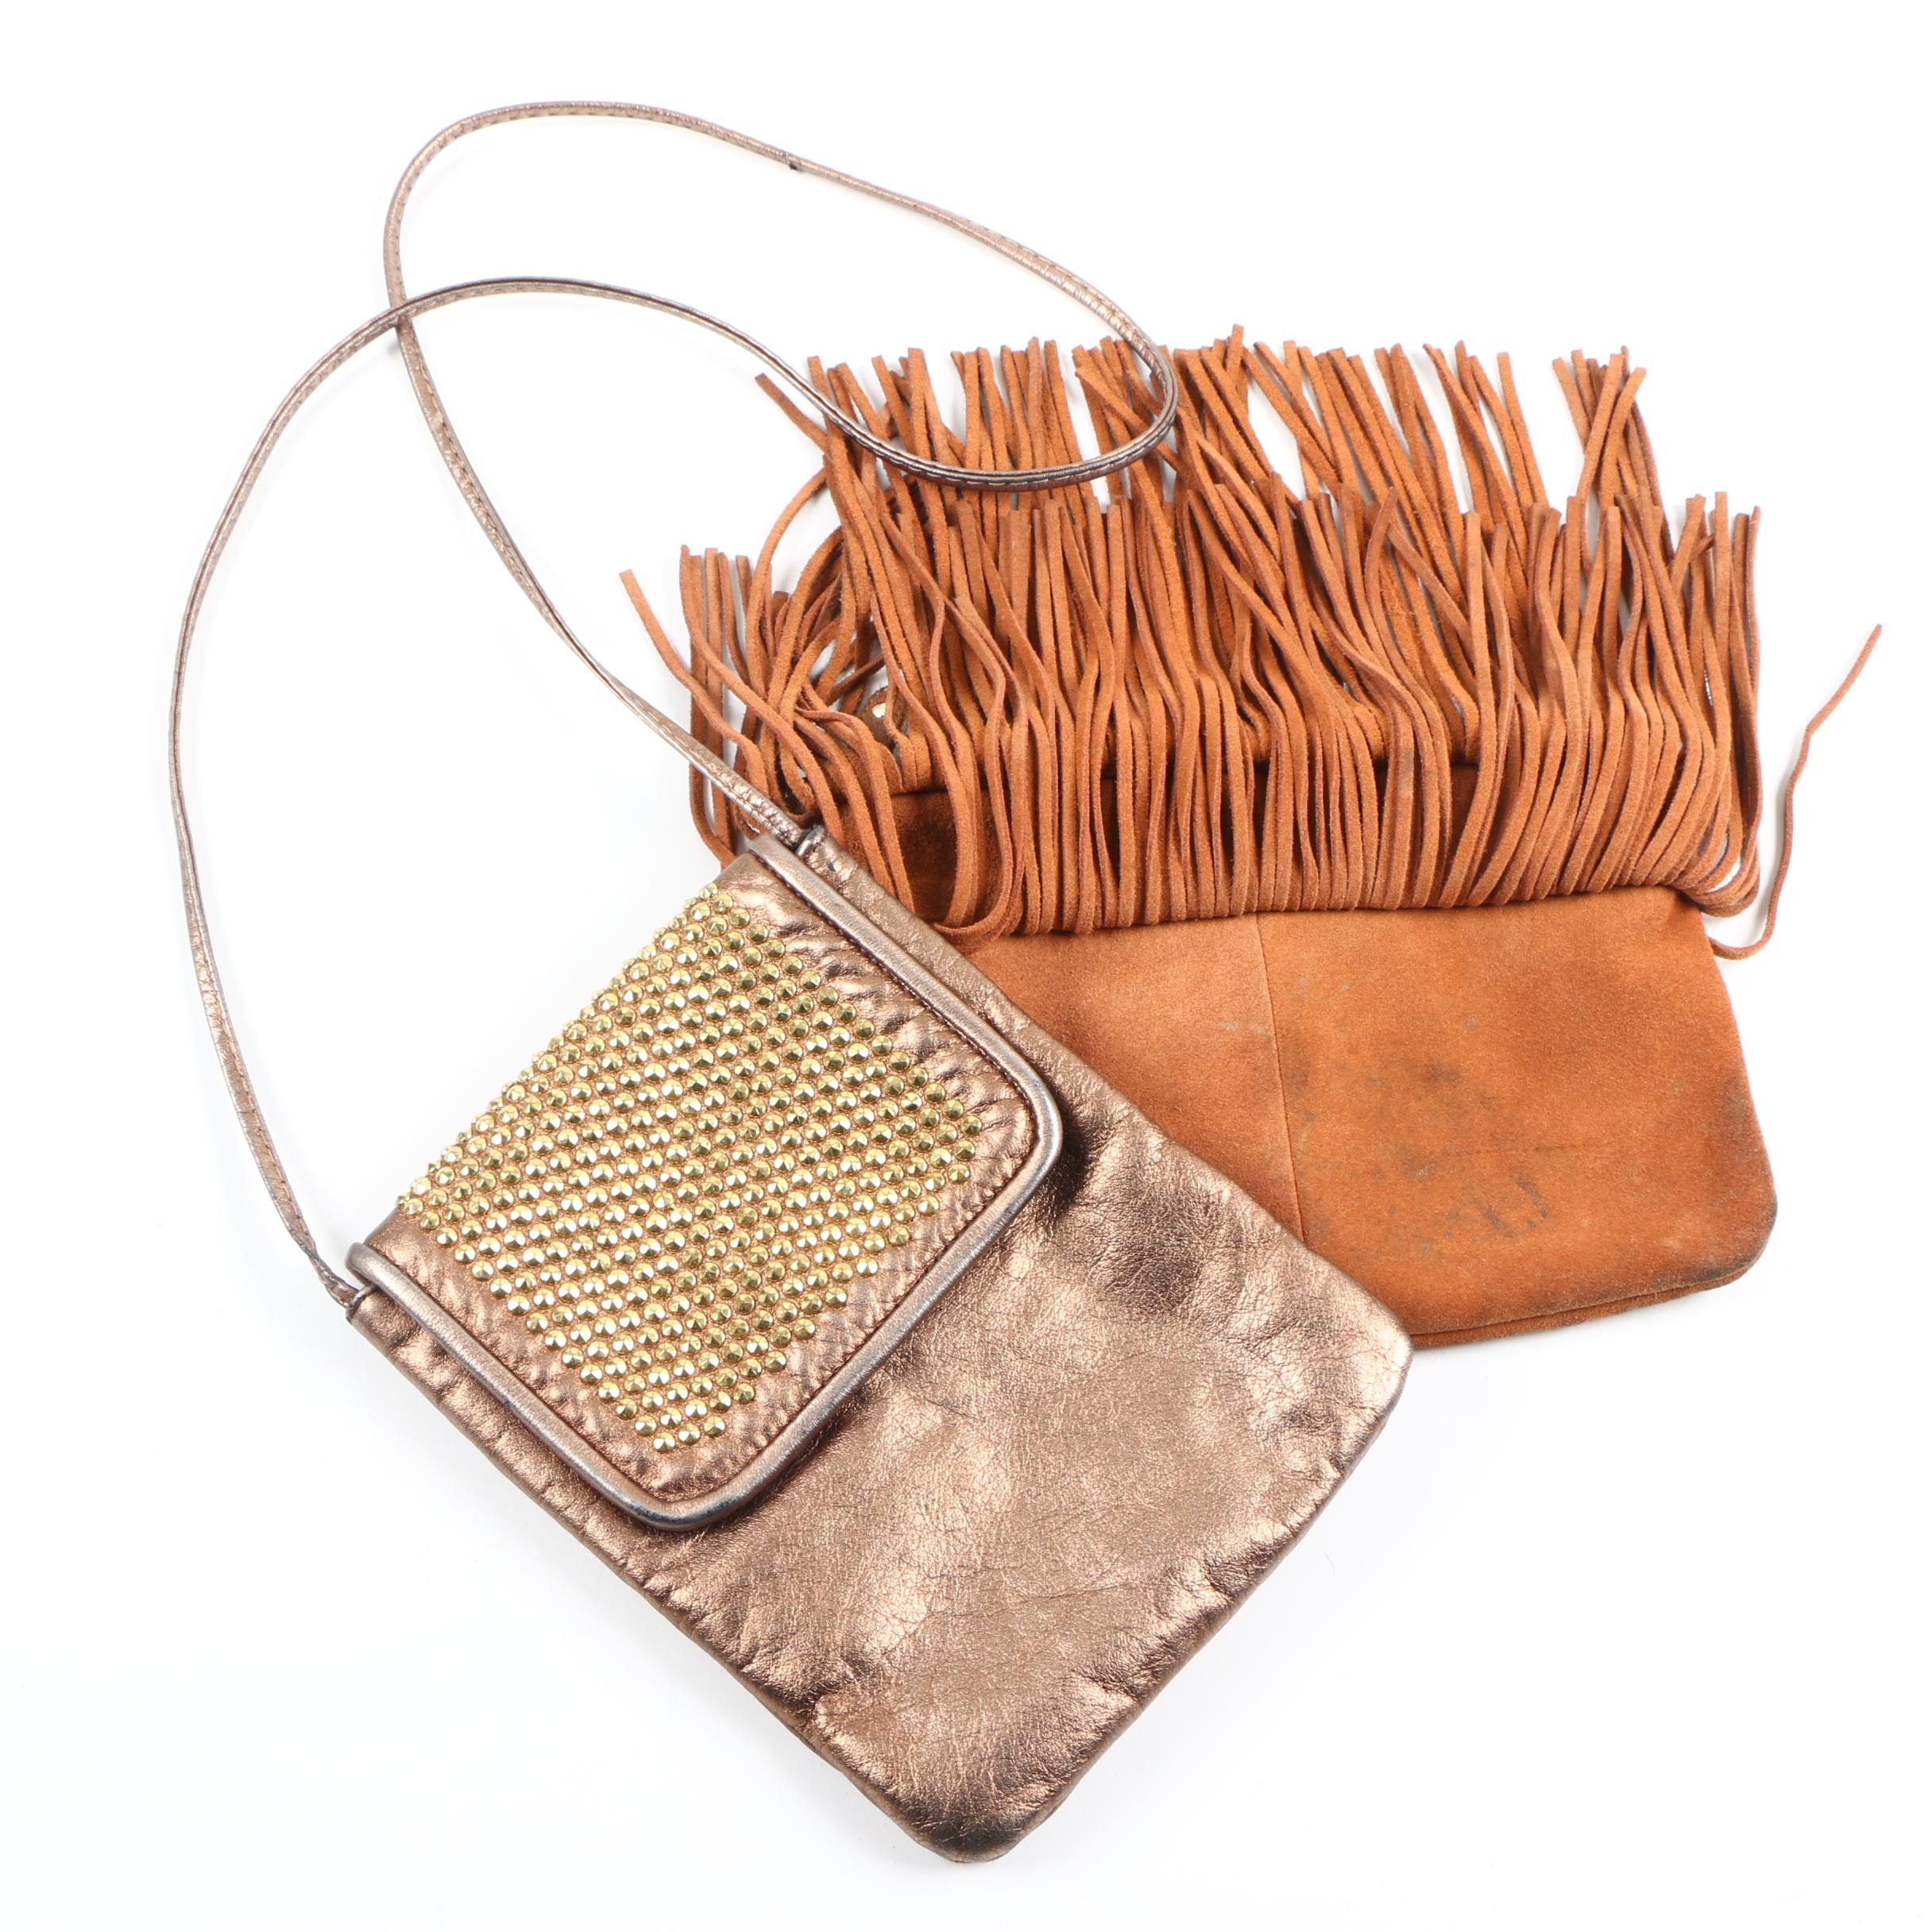 HButler and Dawli Suede and Leather Handbags